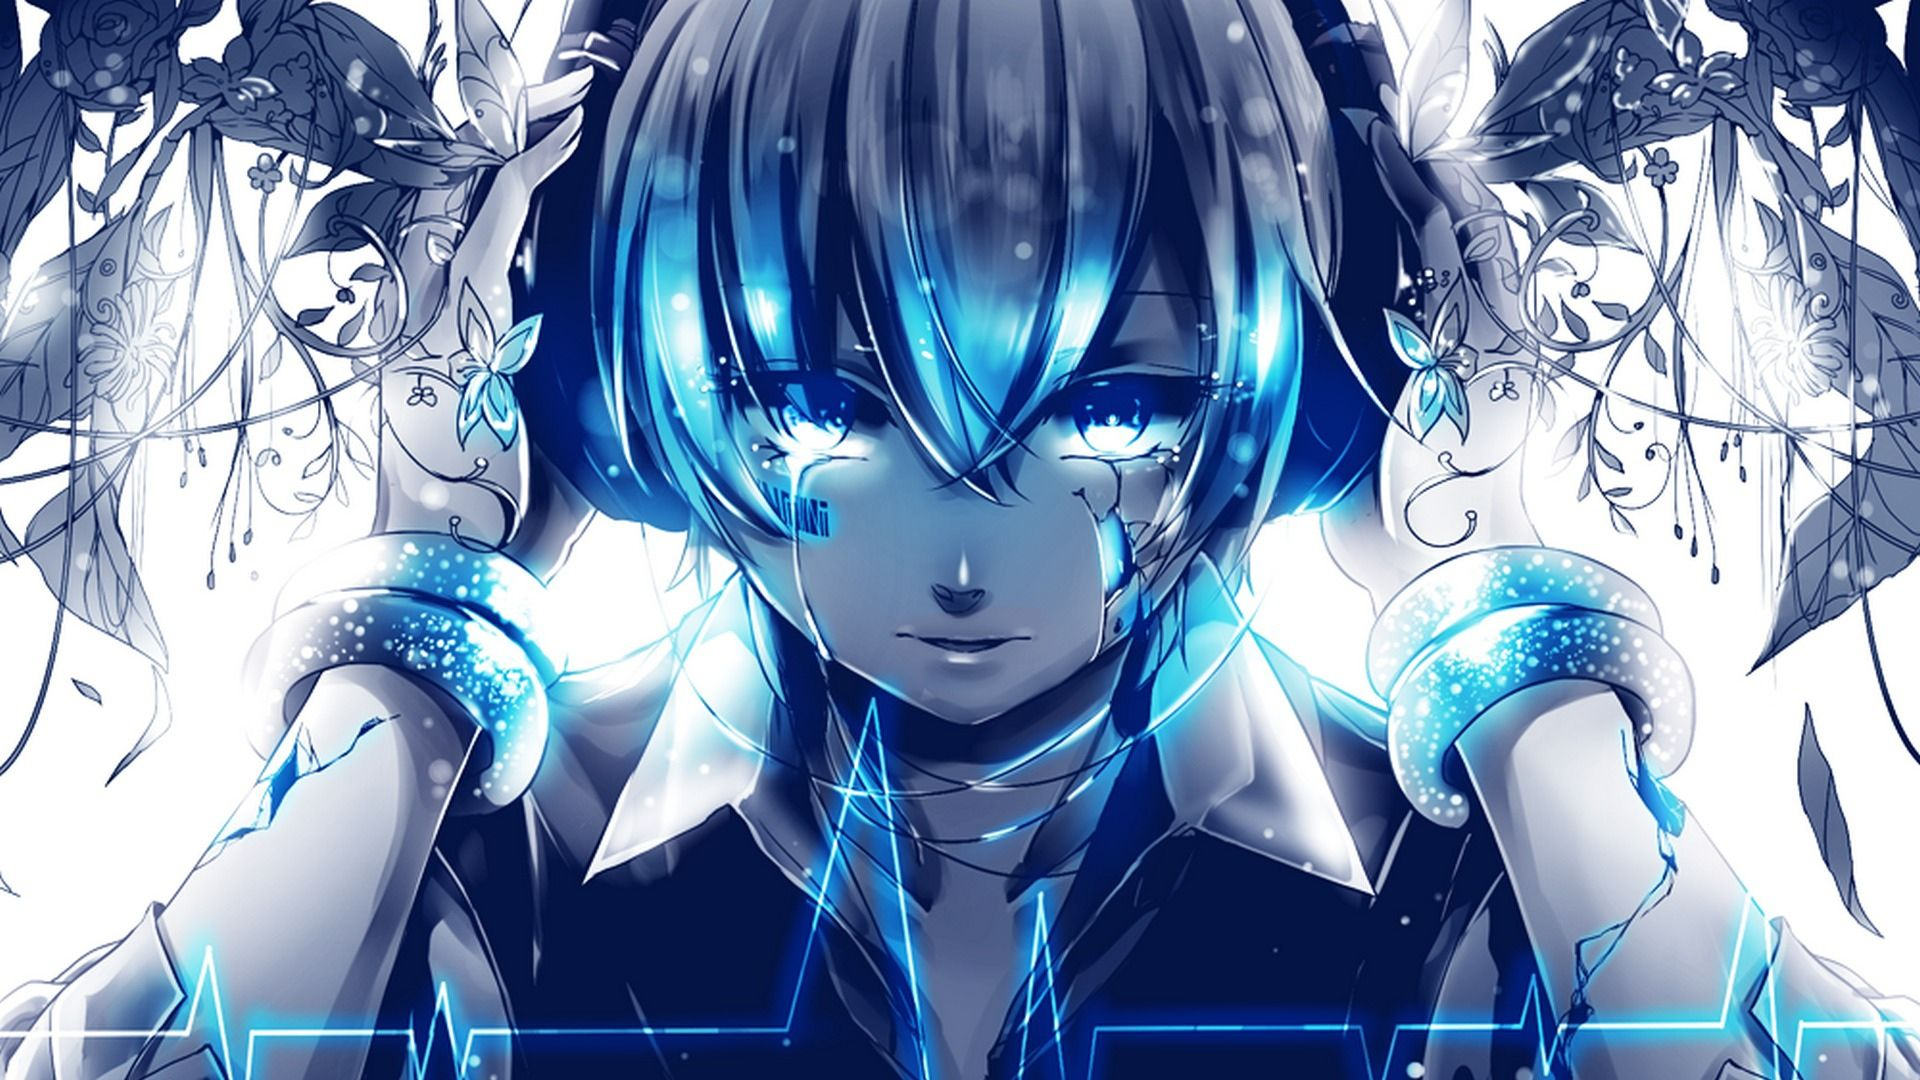 Free Vocaloid Wallpapers Download Gambar anime, Hatsune